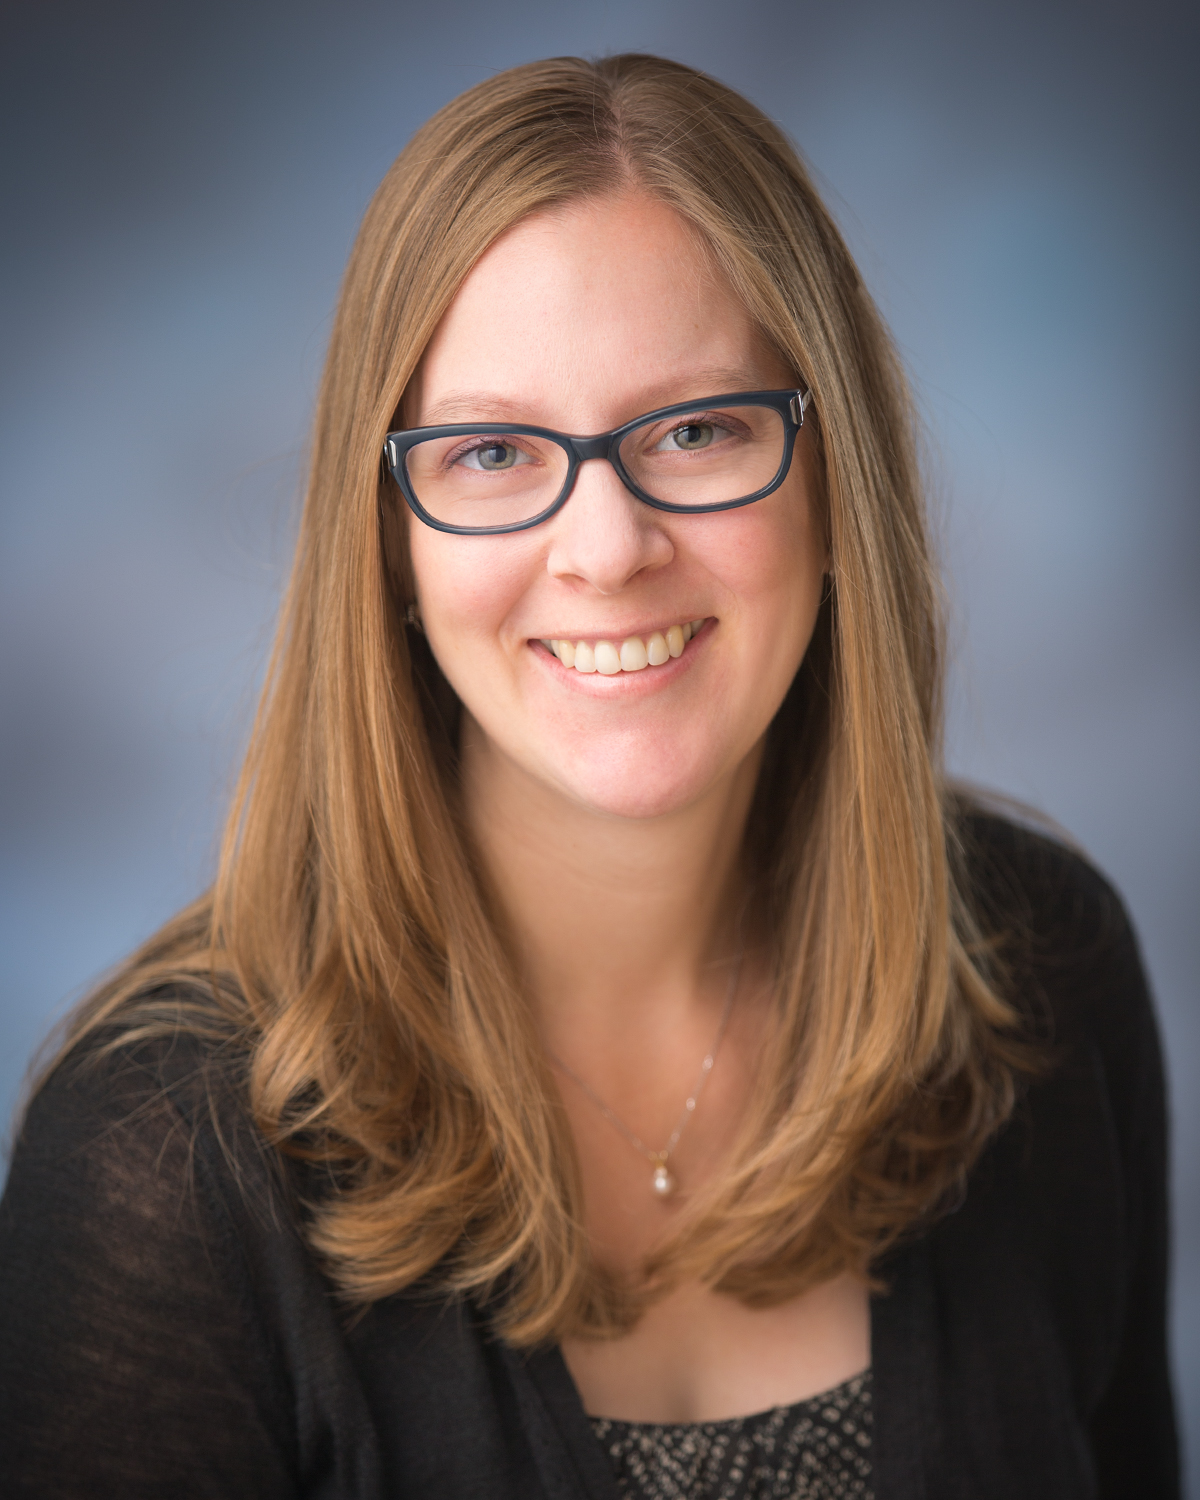 Ashlie A. Tronnes, MD - Physician and Surgeon, Maternal-Fetal Medicine, Portland, OR